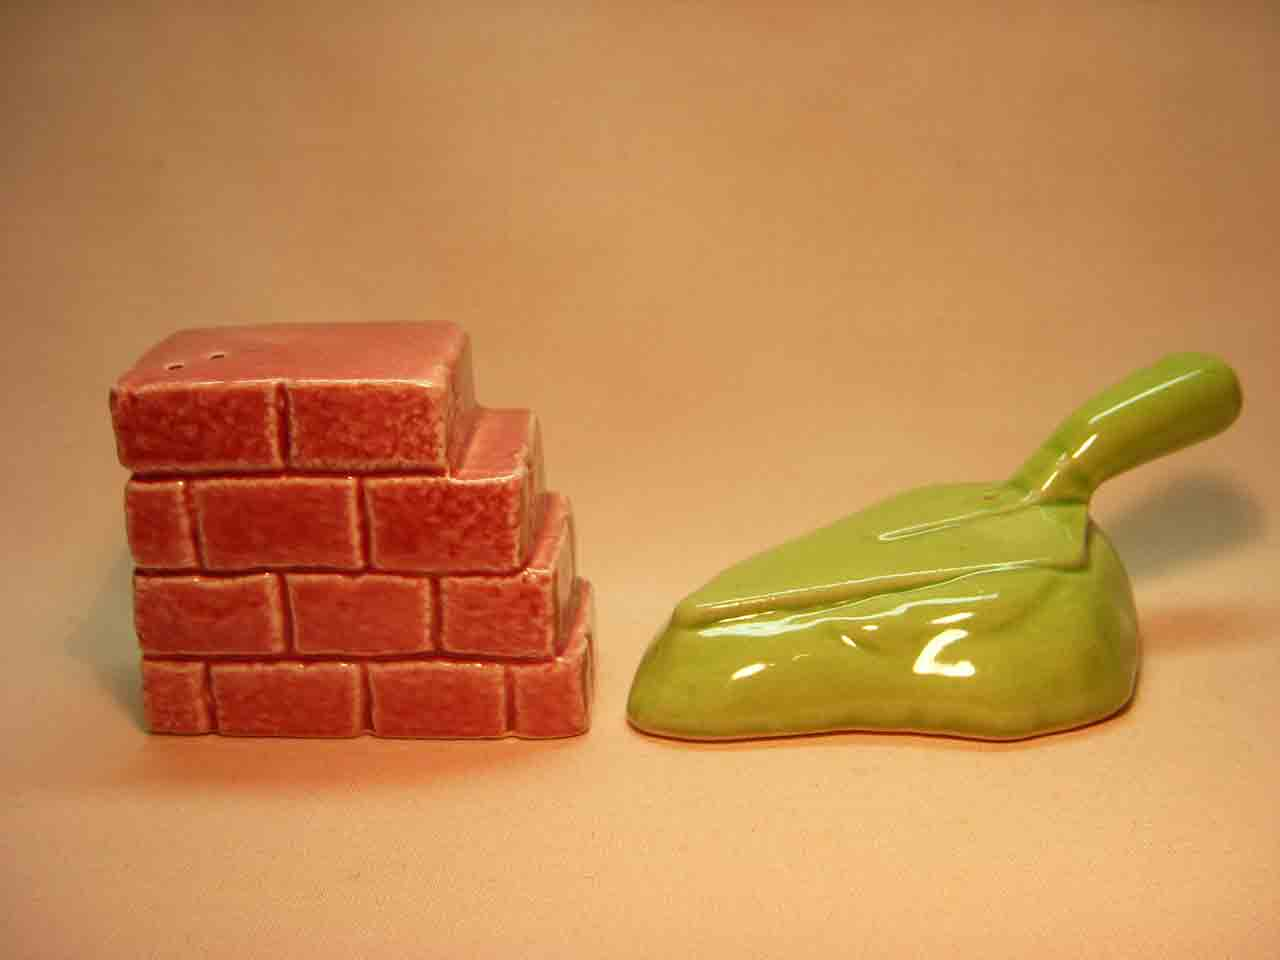 Go with brick mason's brick wall with tool salt and pepper shaker